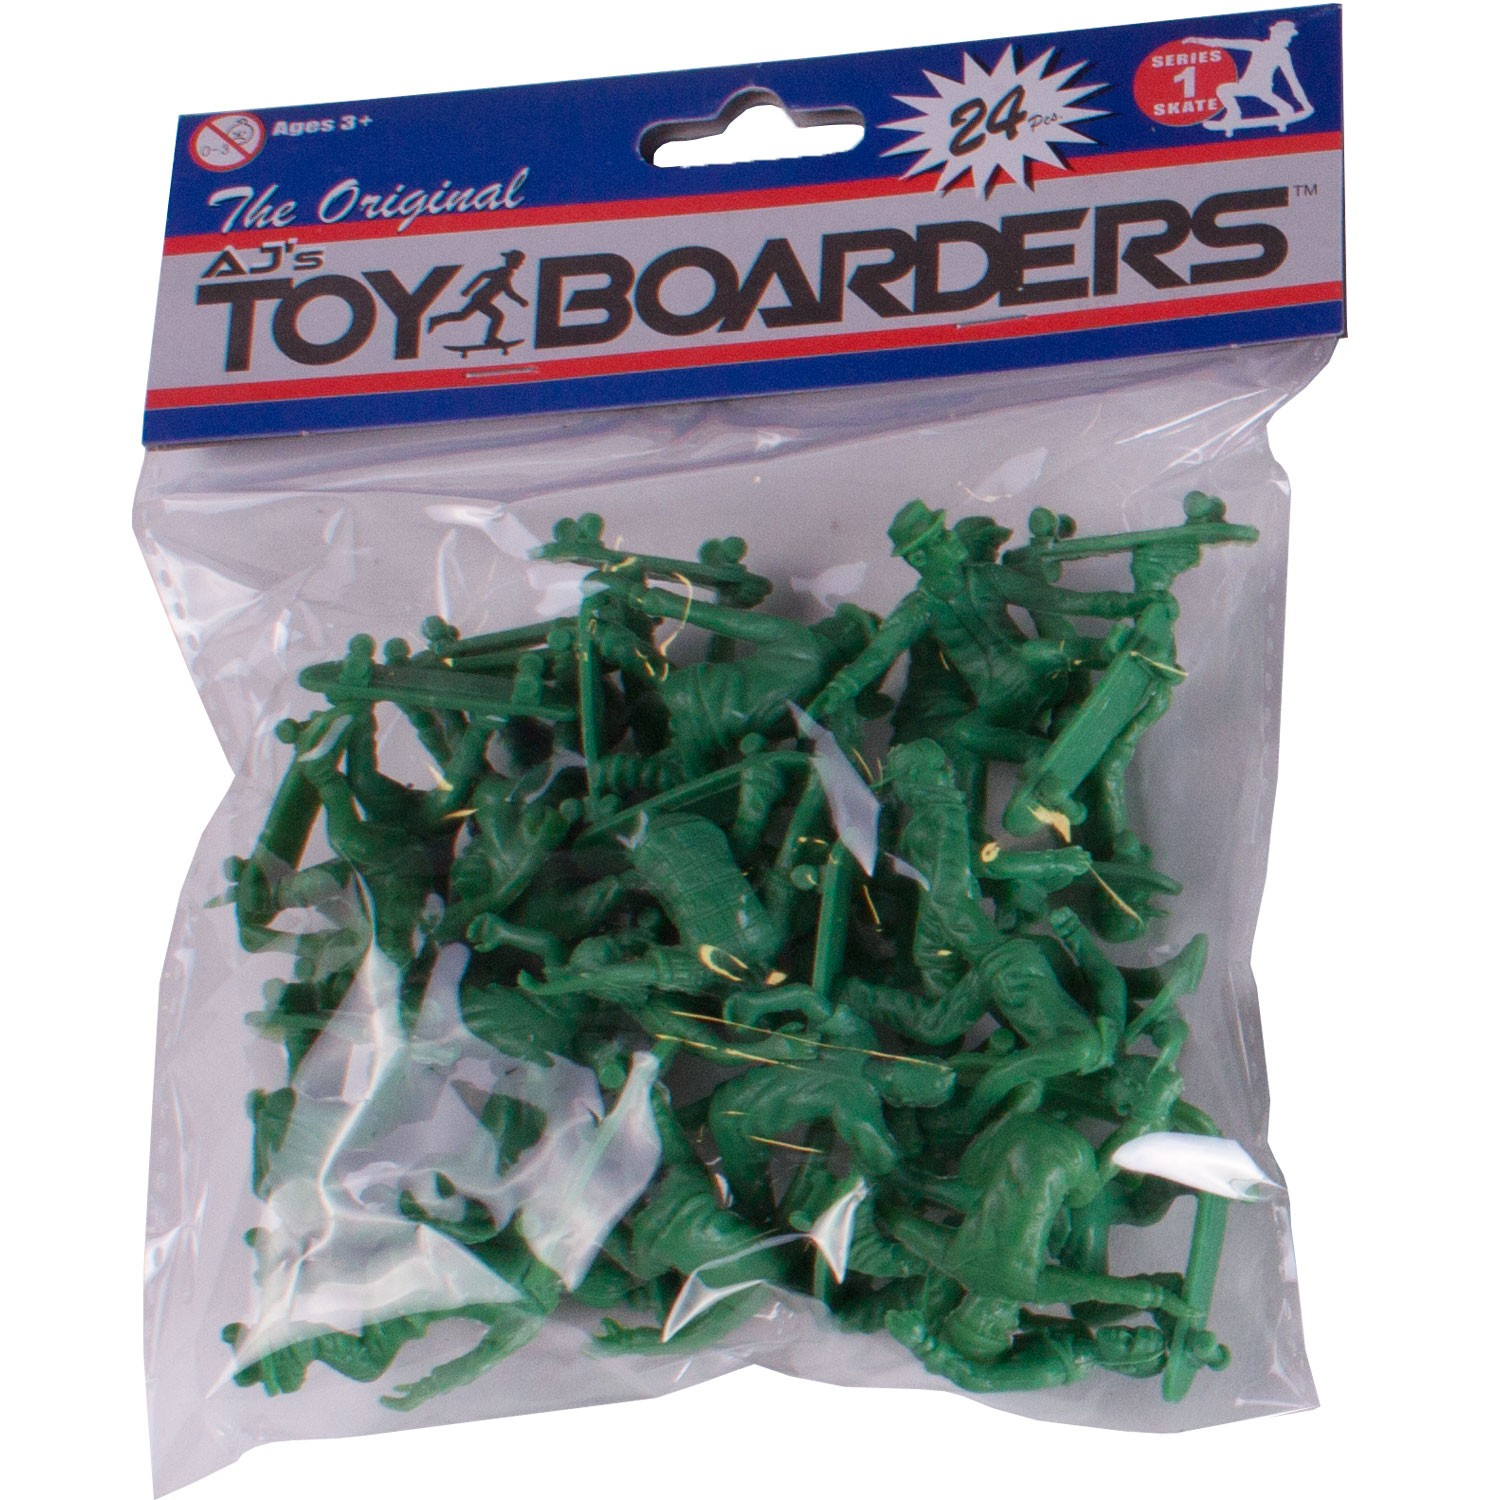 AJ's Toy Boarders 24-Pack - Skate - Series 1